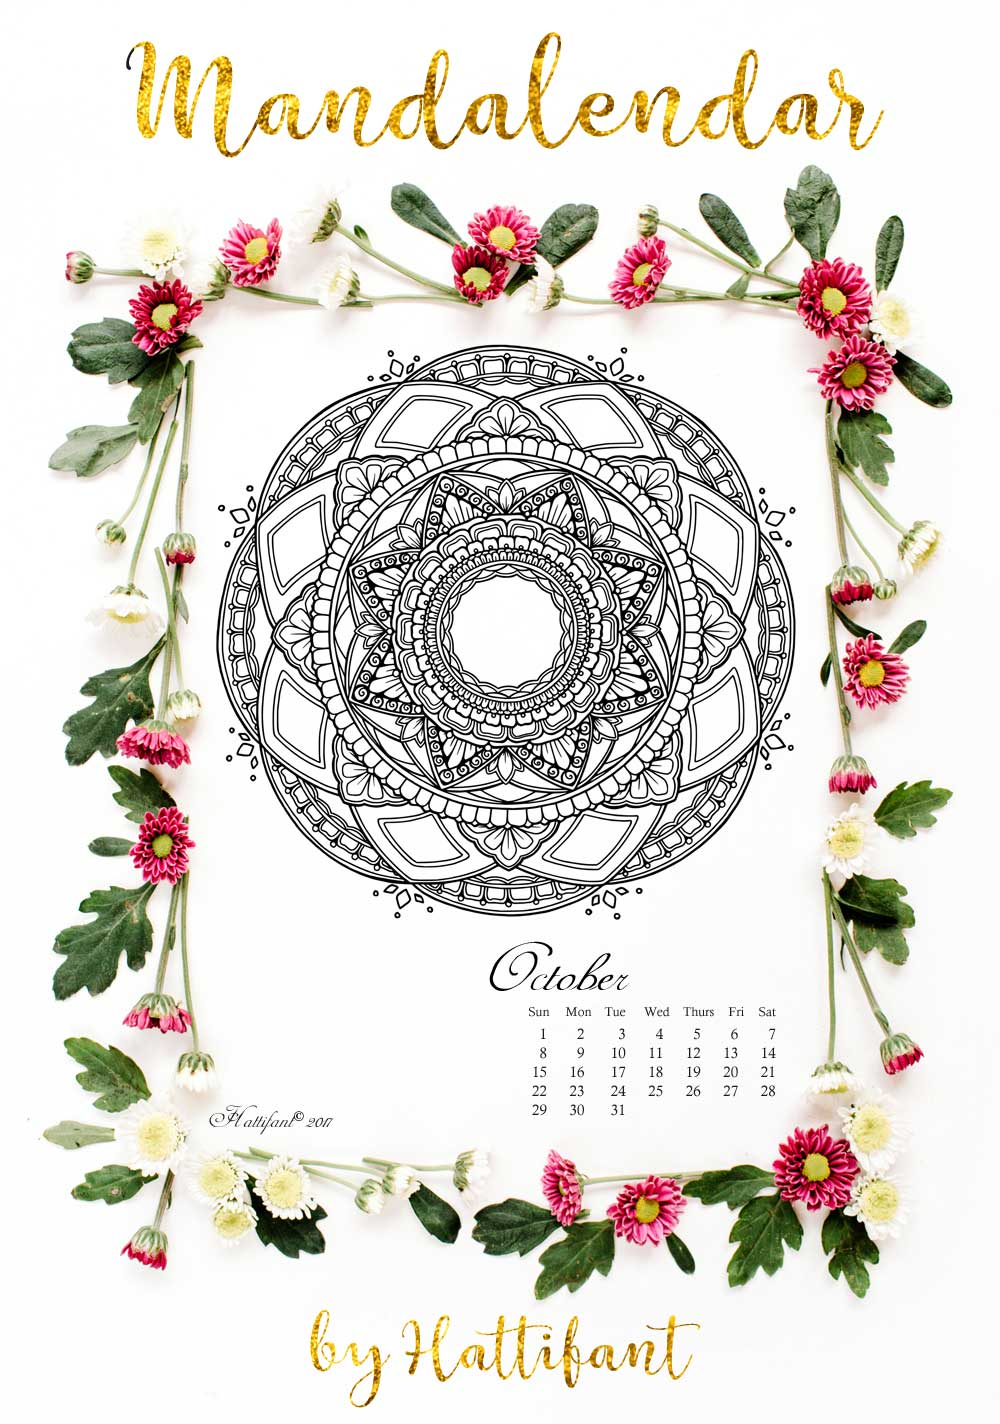 Hattifant's Mandalandar 2017 a Mandala Calendar Coloring Page to download for free during October